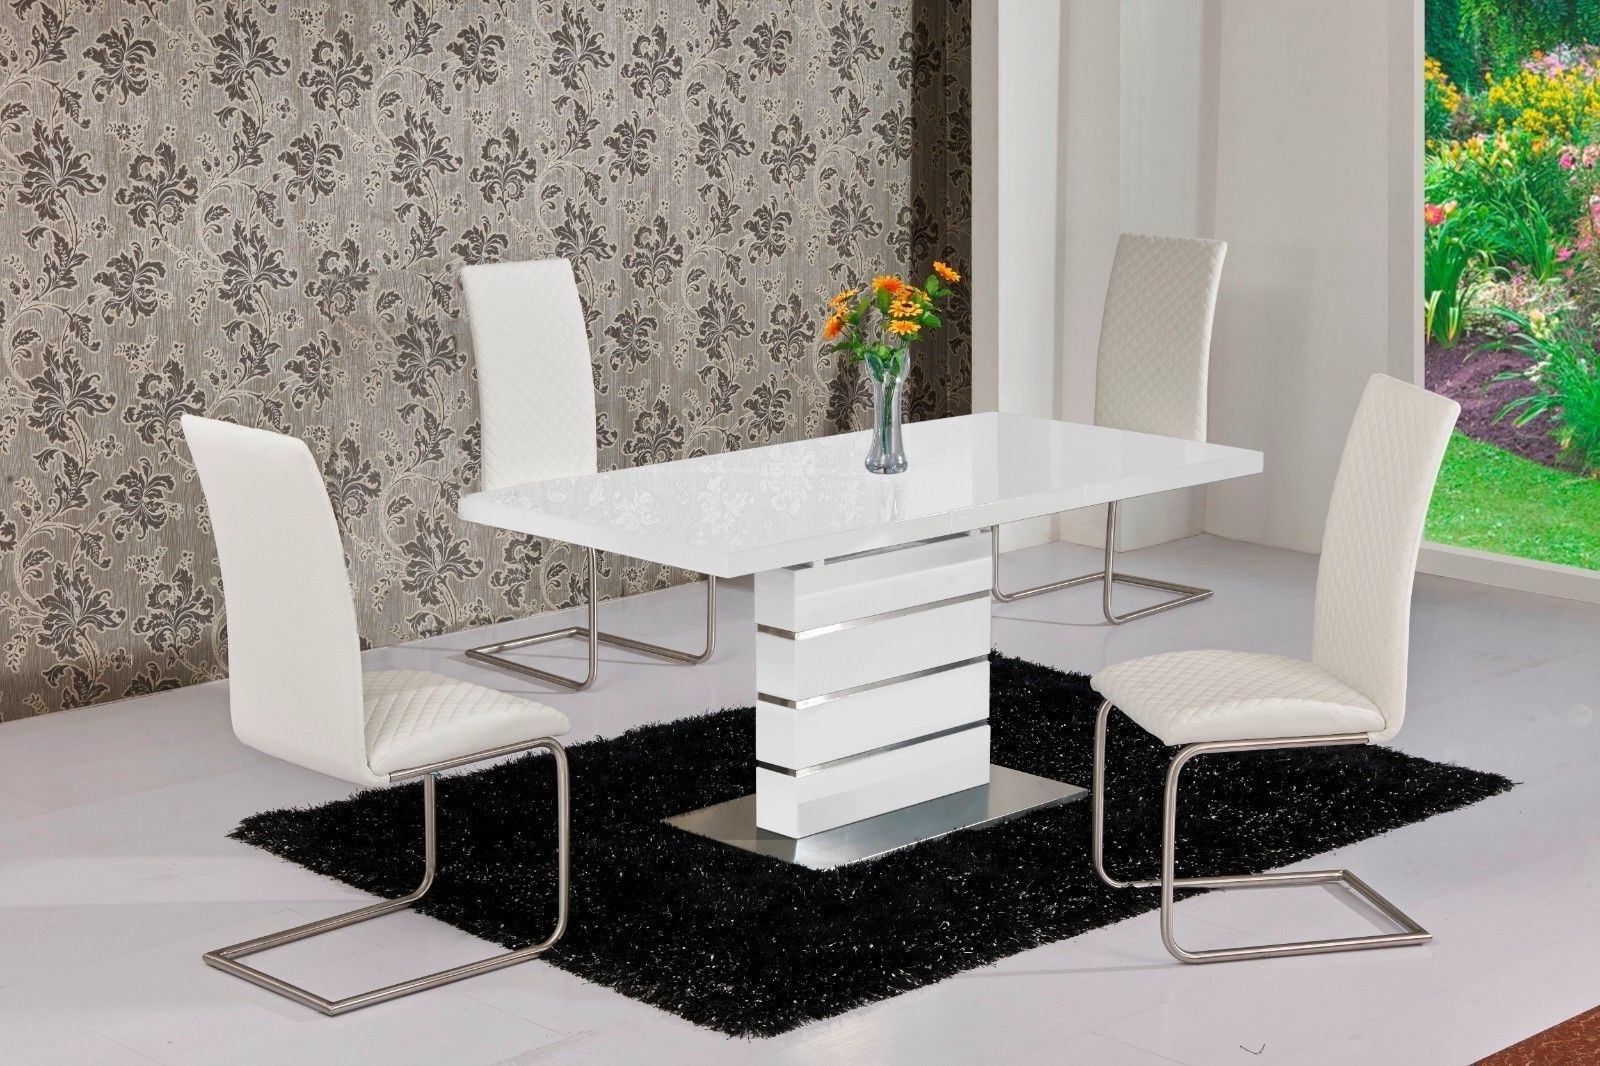 Mace High Gloss Extending 120 160 Dining Table & Chair Set – White Regarding Newest Dining Tables Chairs (View 17 of 25)